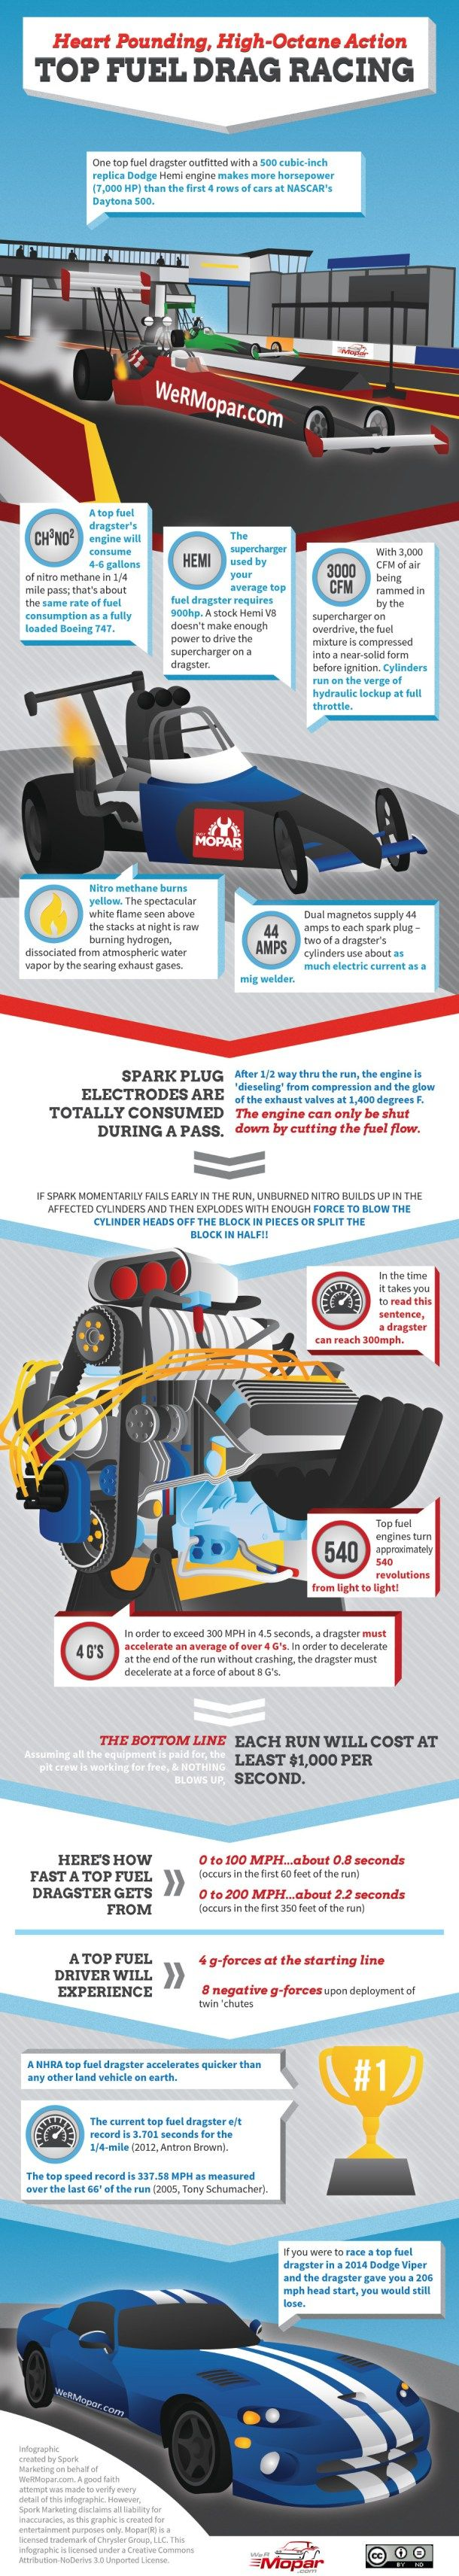 Top Fuel Drag Racing [INFOGRAPHIC] #drag #racing